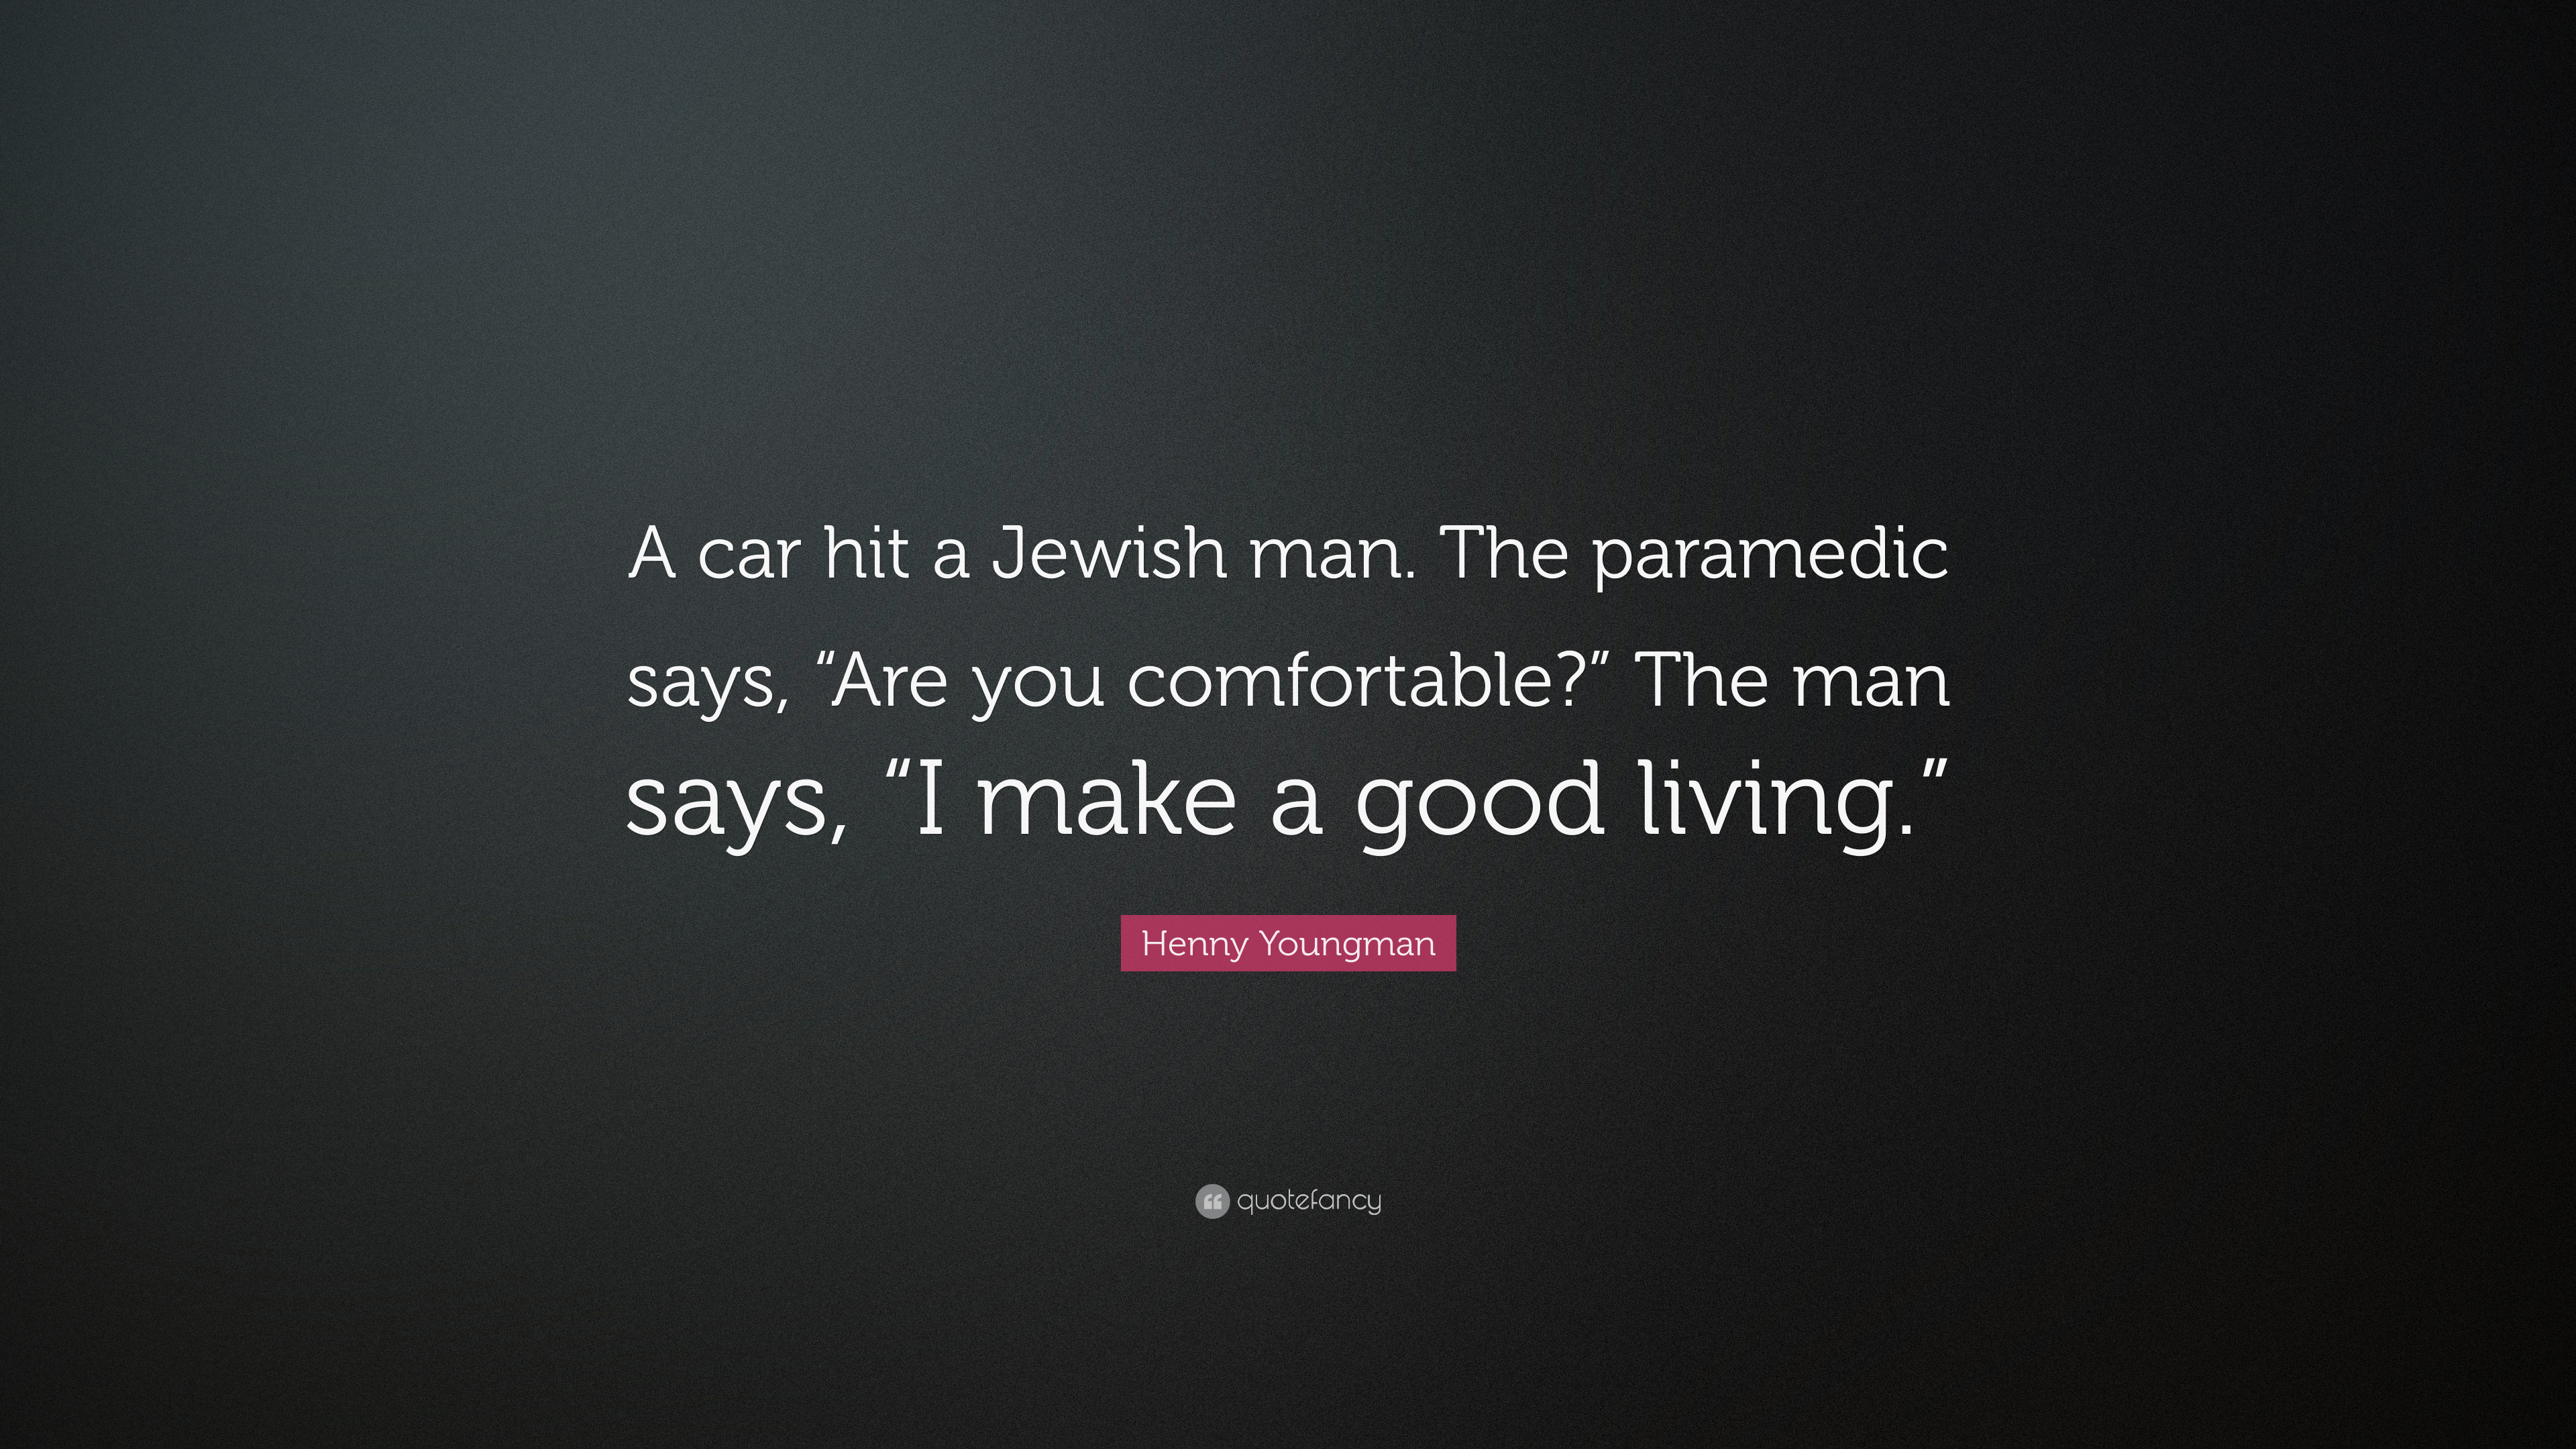 Henny Youngman Quote A Car Hit A Jewish Man The Paramedic Says Are You Comfortable The Man Says I Make A Good Living 7 Wallpapers Quotefancy